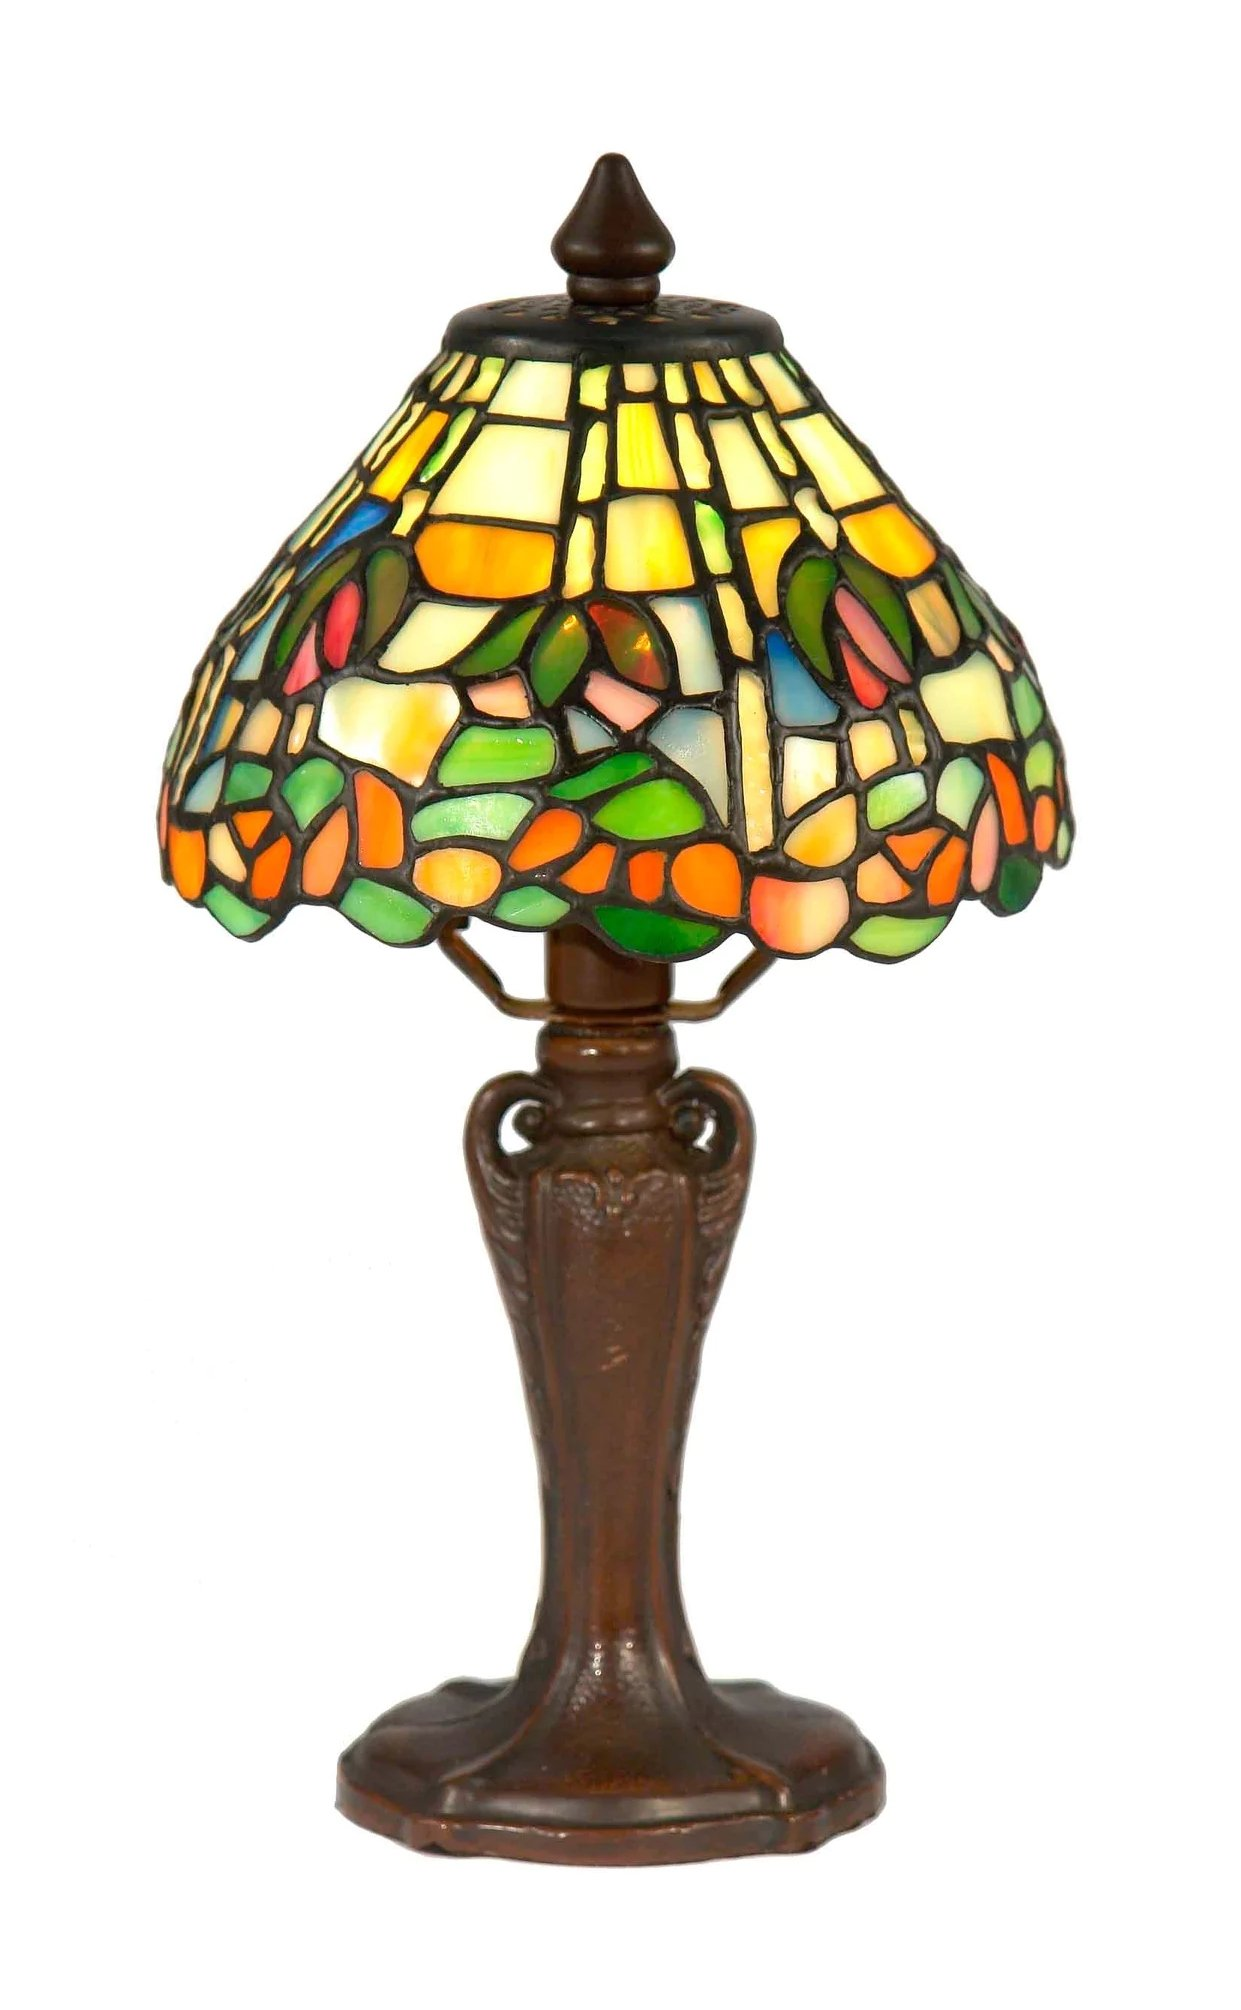 Dale Tiffany Lamps STA17104 Benoit Tiffany Accent Lamp